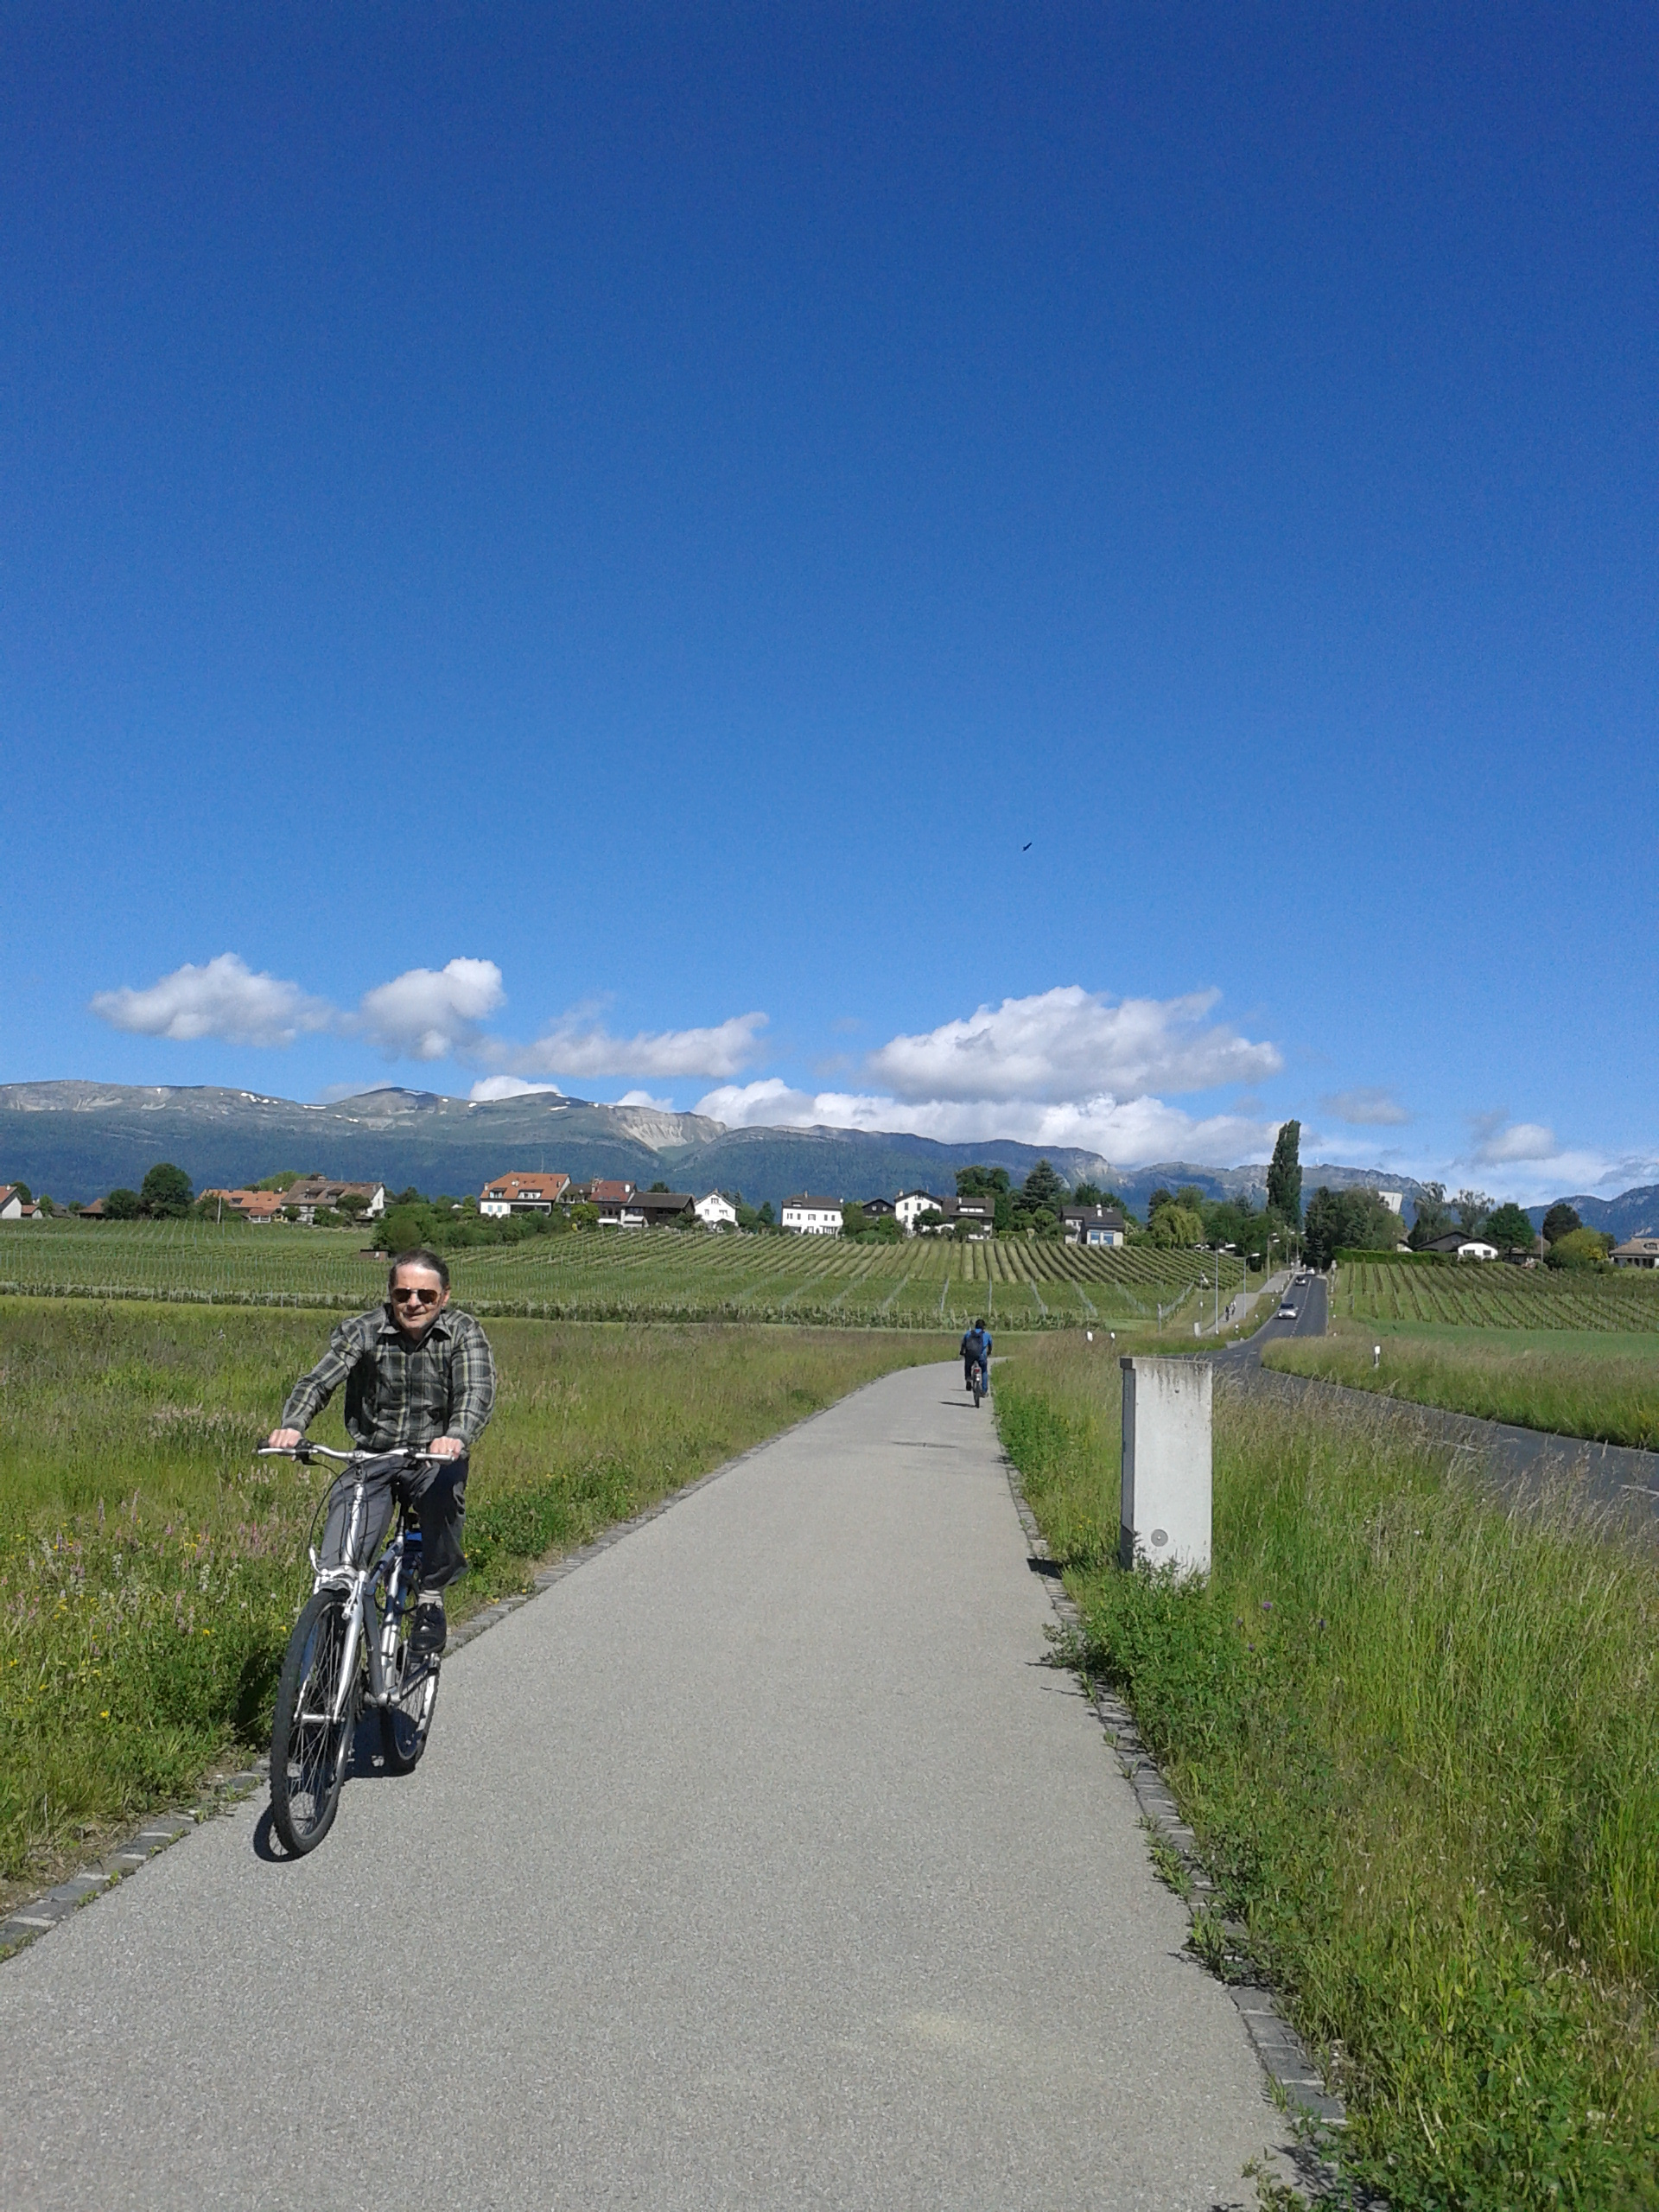 CERN is bikeable from GVA